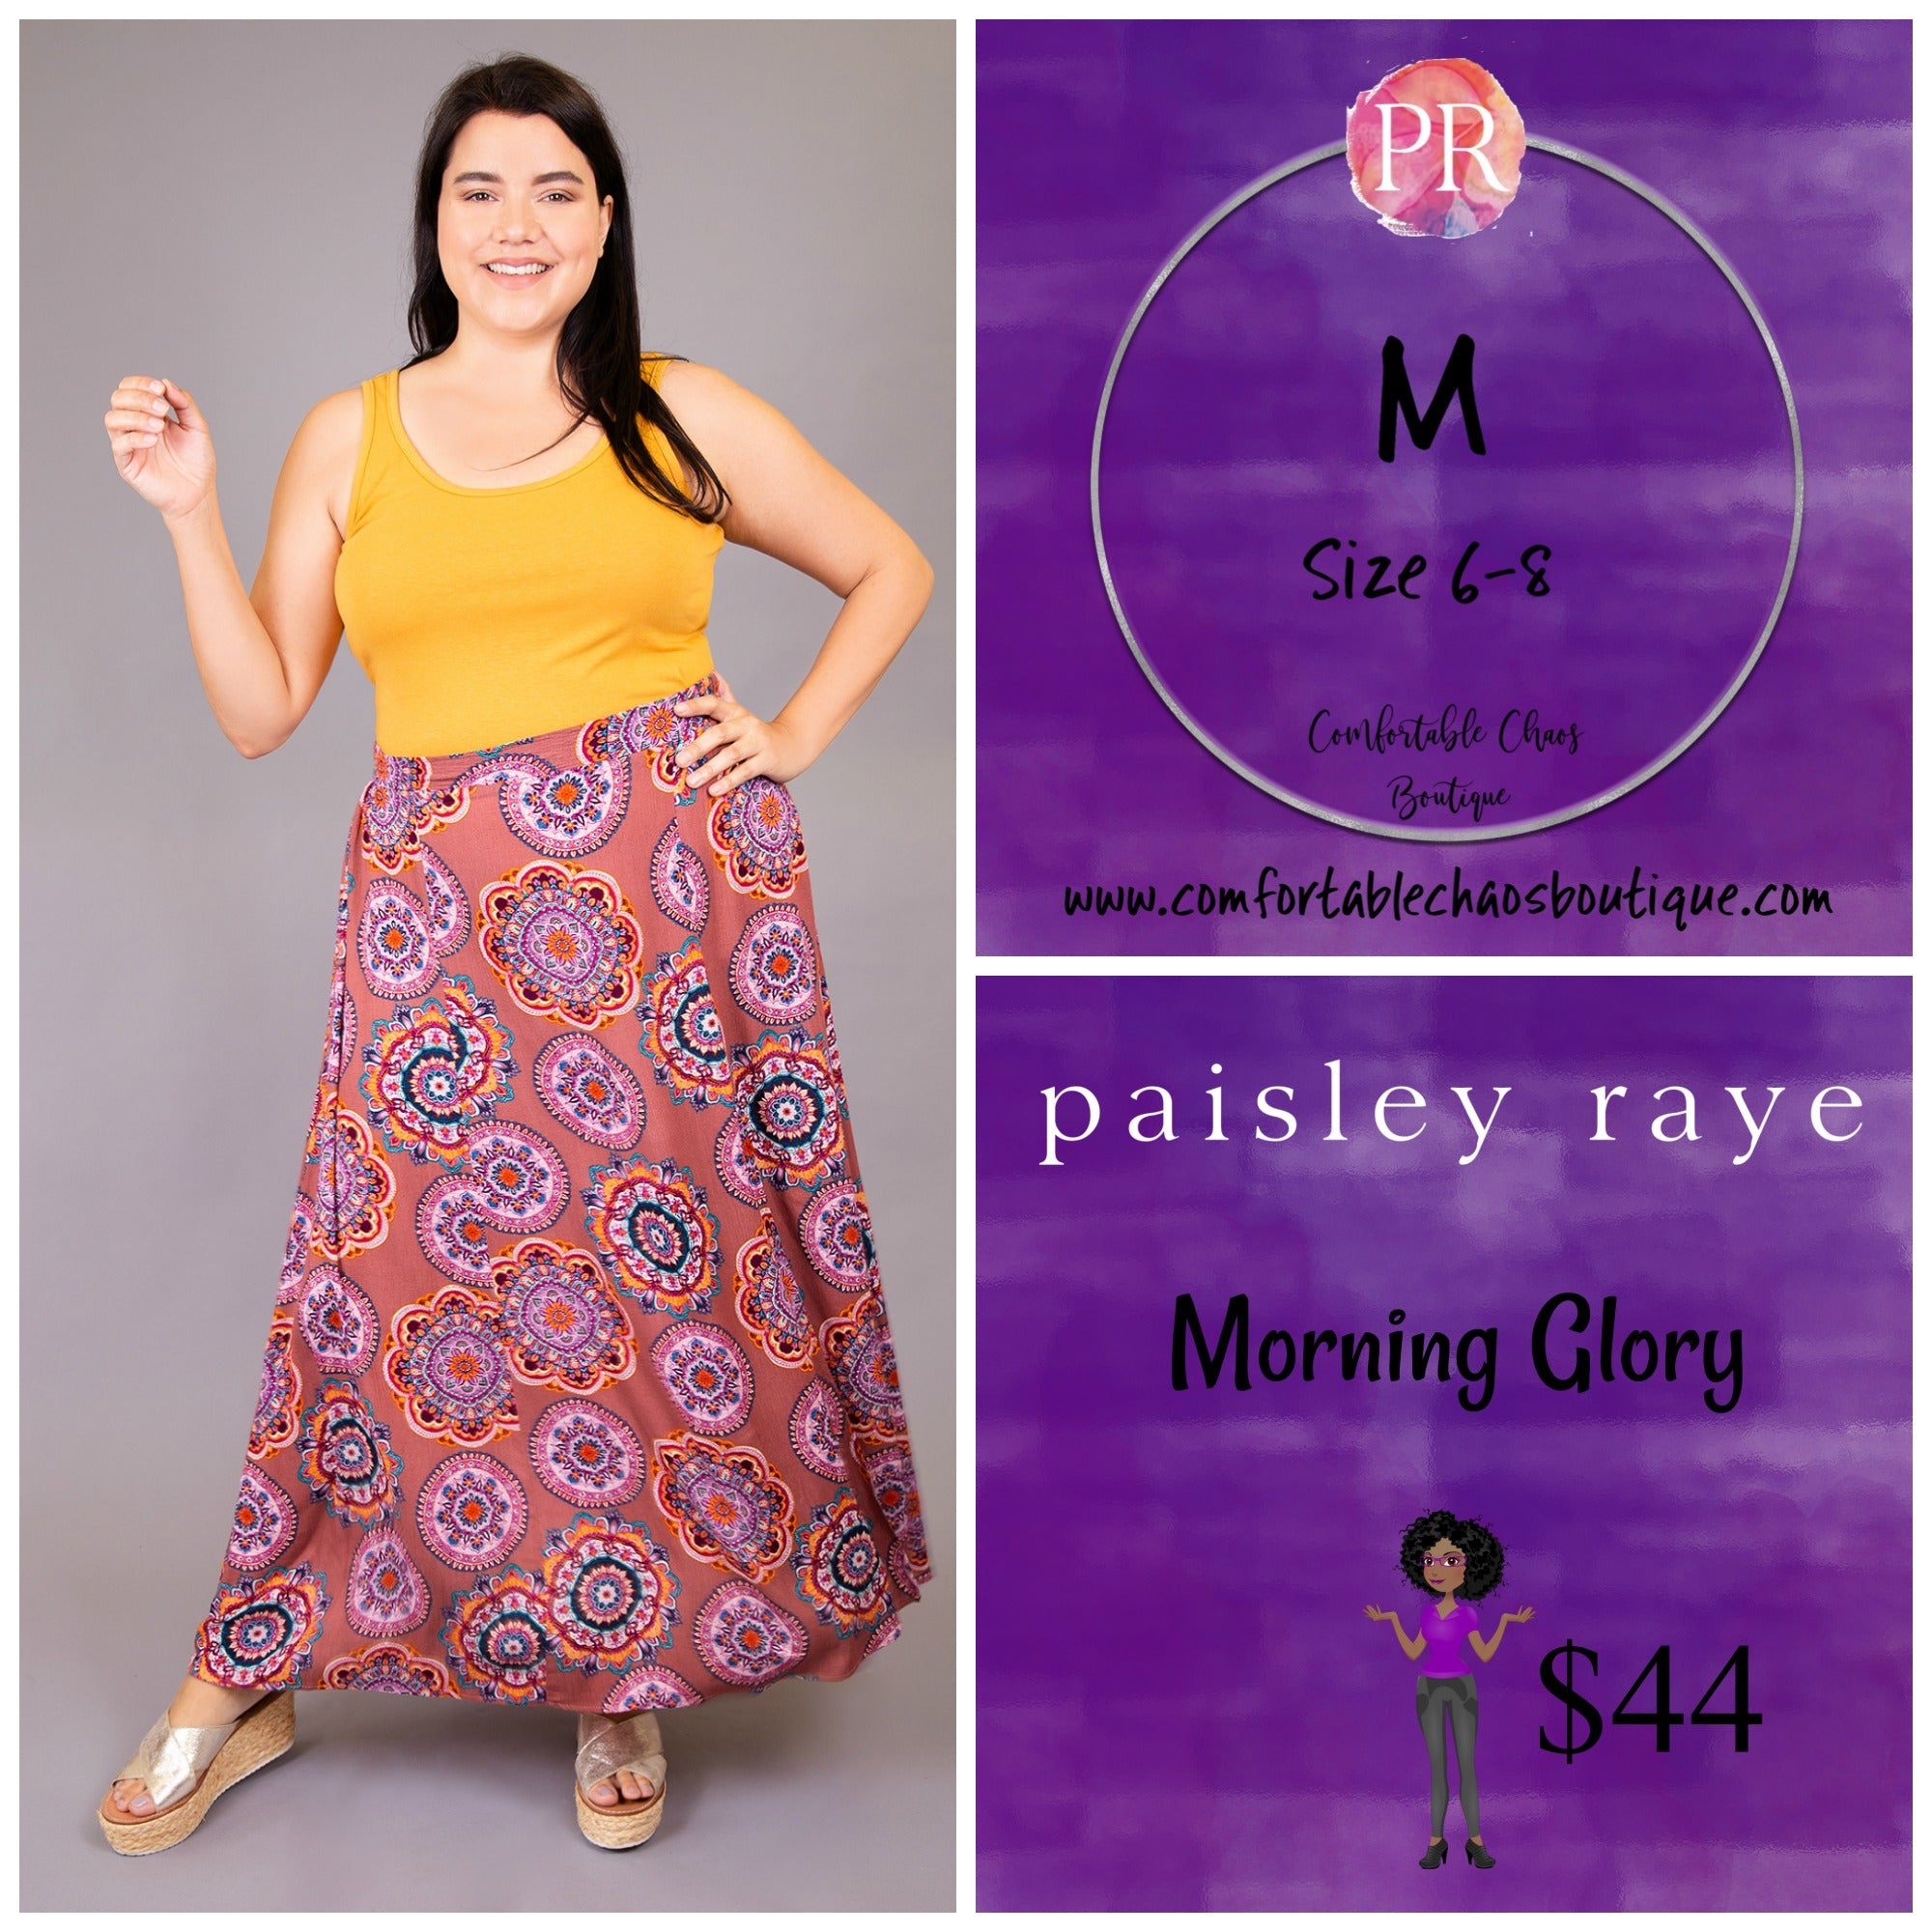 comfortable-chaos-boutique - Morning Glory - Medallion Pattern (M) - Skirt